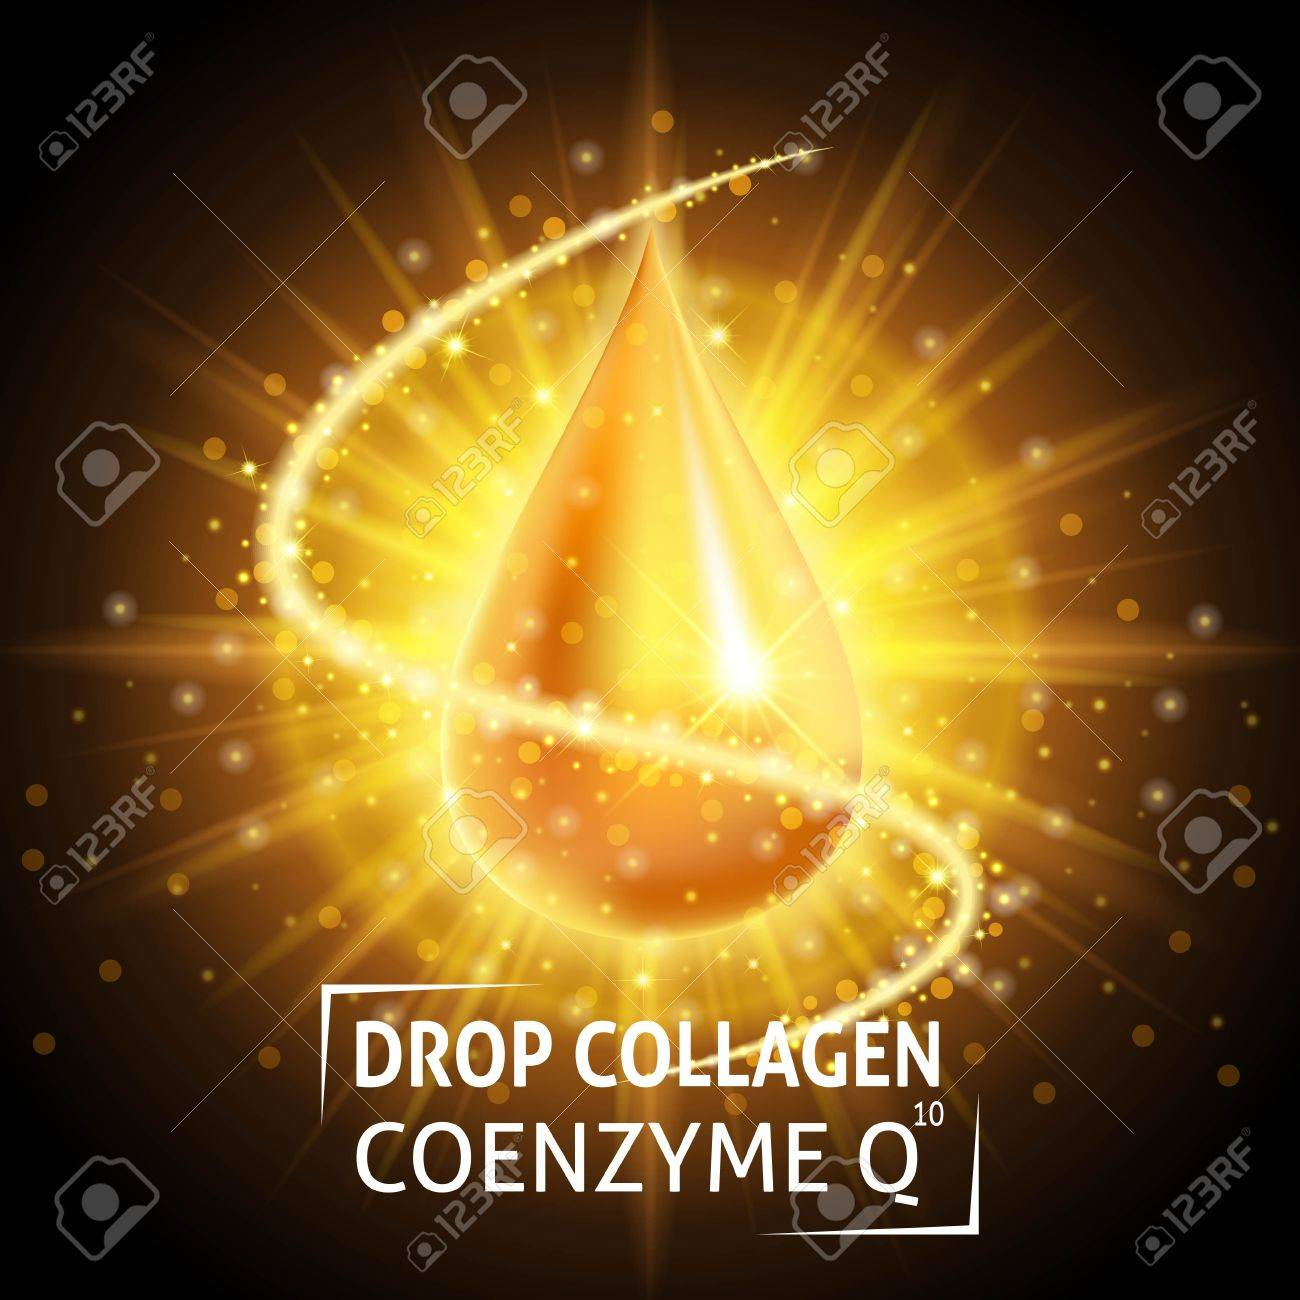 Serum Collagen Coenzyme Q10, realistic golden drop. Taking care of the skin. Anti age hyaluronic serum. Design cosmetics. Vector illustration. - 63445944